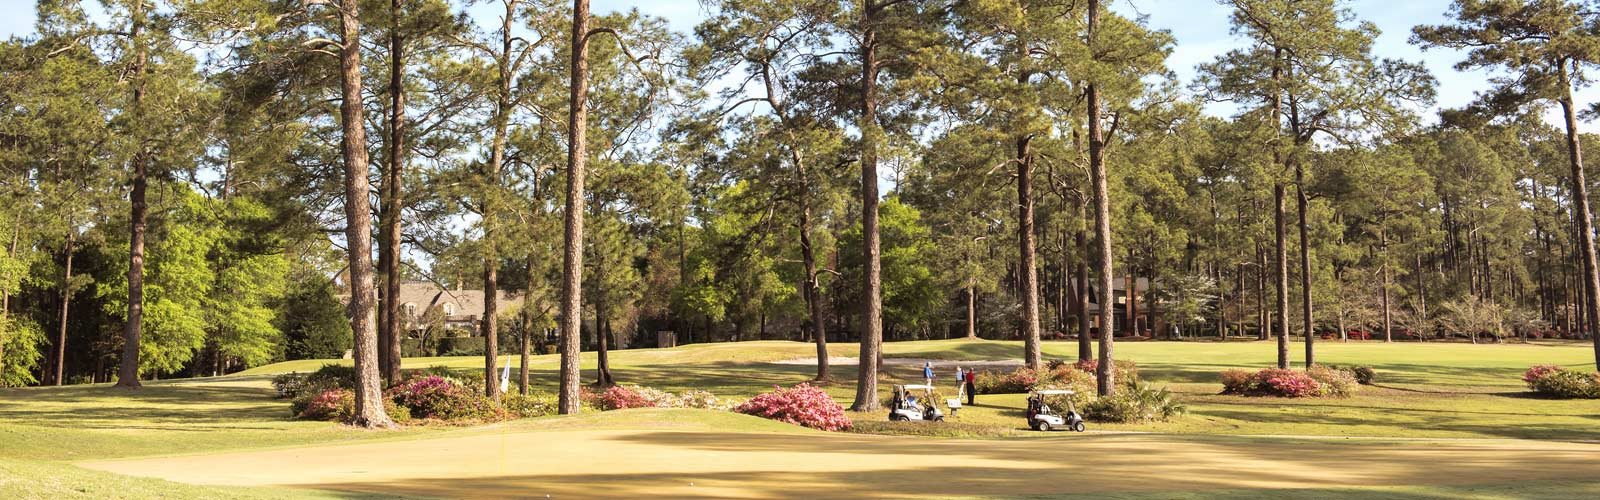 South Georgia Golf